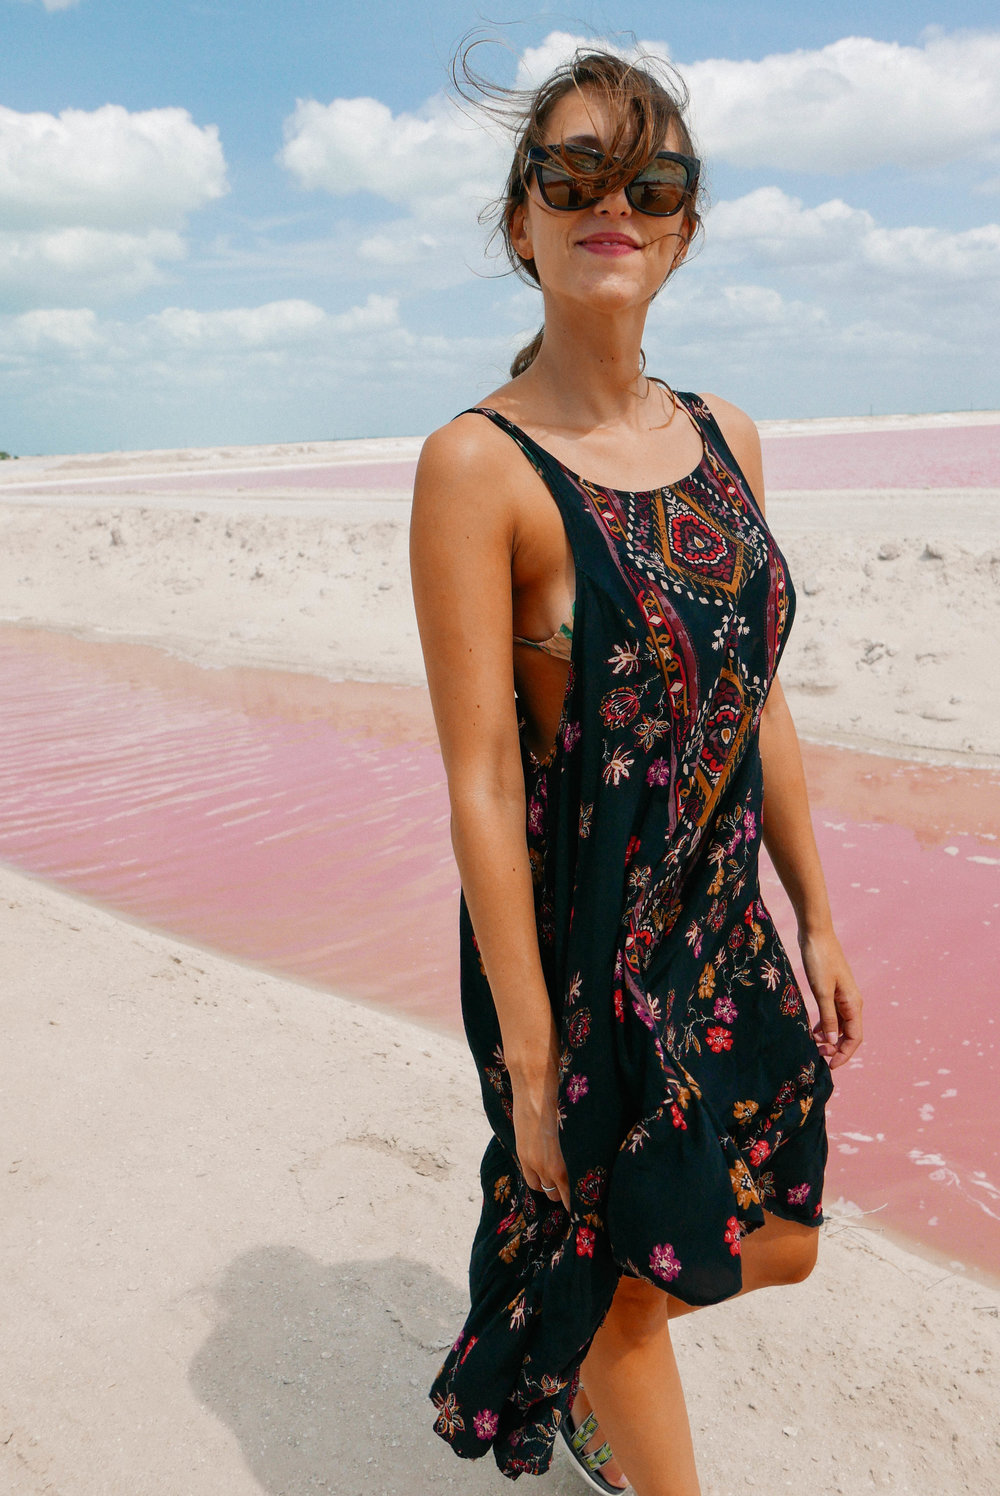 Happy as a clam to see the pink waters.